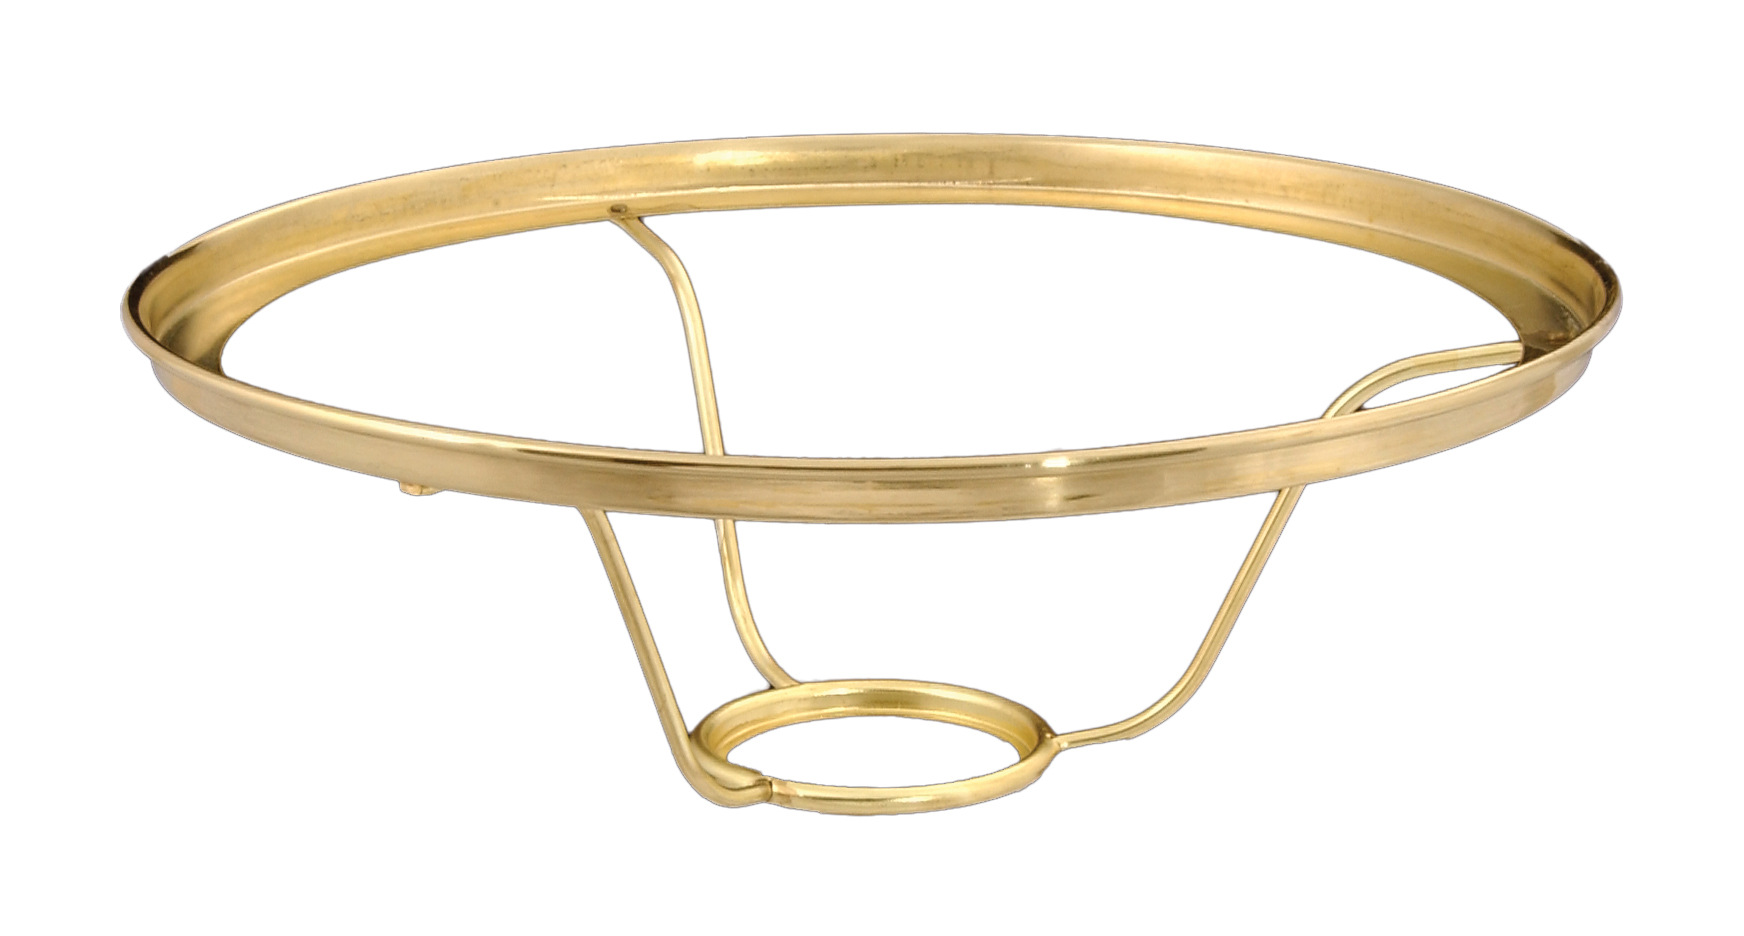 10 inch solid brass shade ring holders designed to fit aladdin brand 10739 10 inch solid brass shade ring holders designed to fit aladdin brand burners aloadofball Choice Image